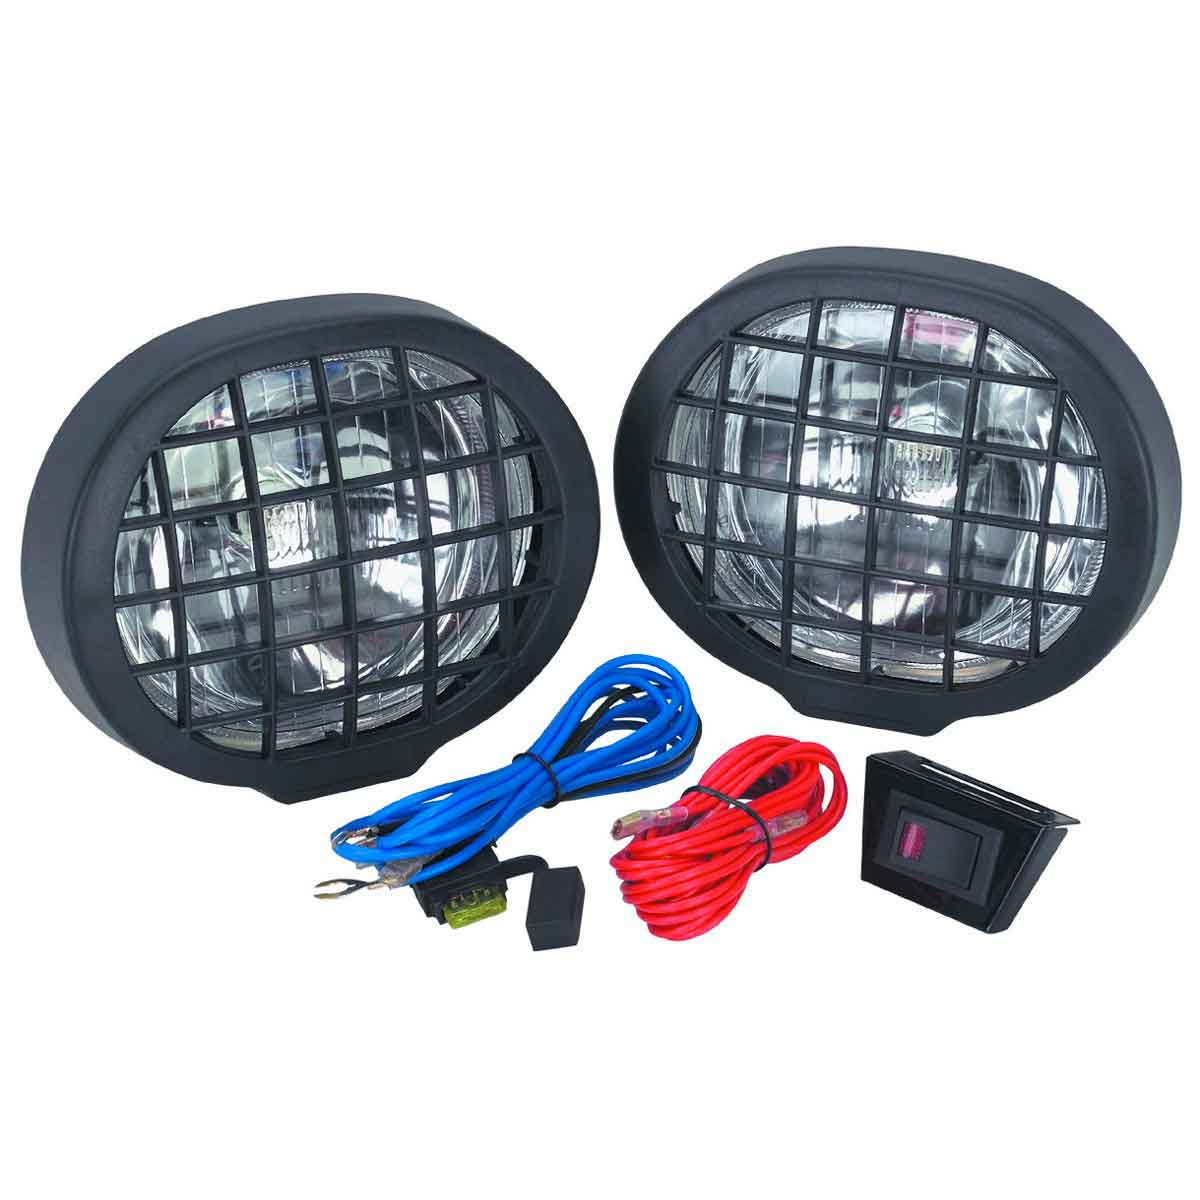 Best Off Roading Lights Nov 2018 Expert Ratings Reviews Light Wiring Kit Additionally Road Likewise Led Remote Remotes Are A Superb Way To Encourage Power Management And Extend Your Battery Life When The Switch Is Right At Thumb Without Needing